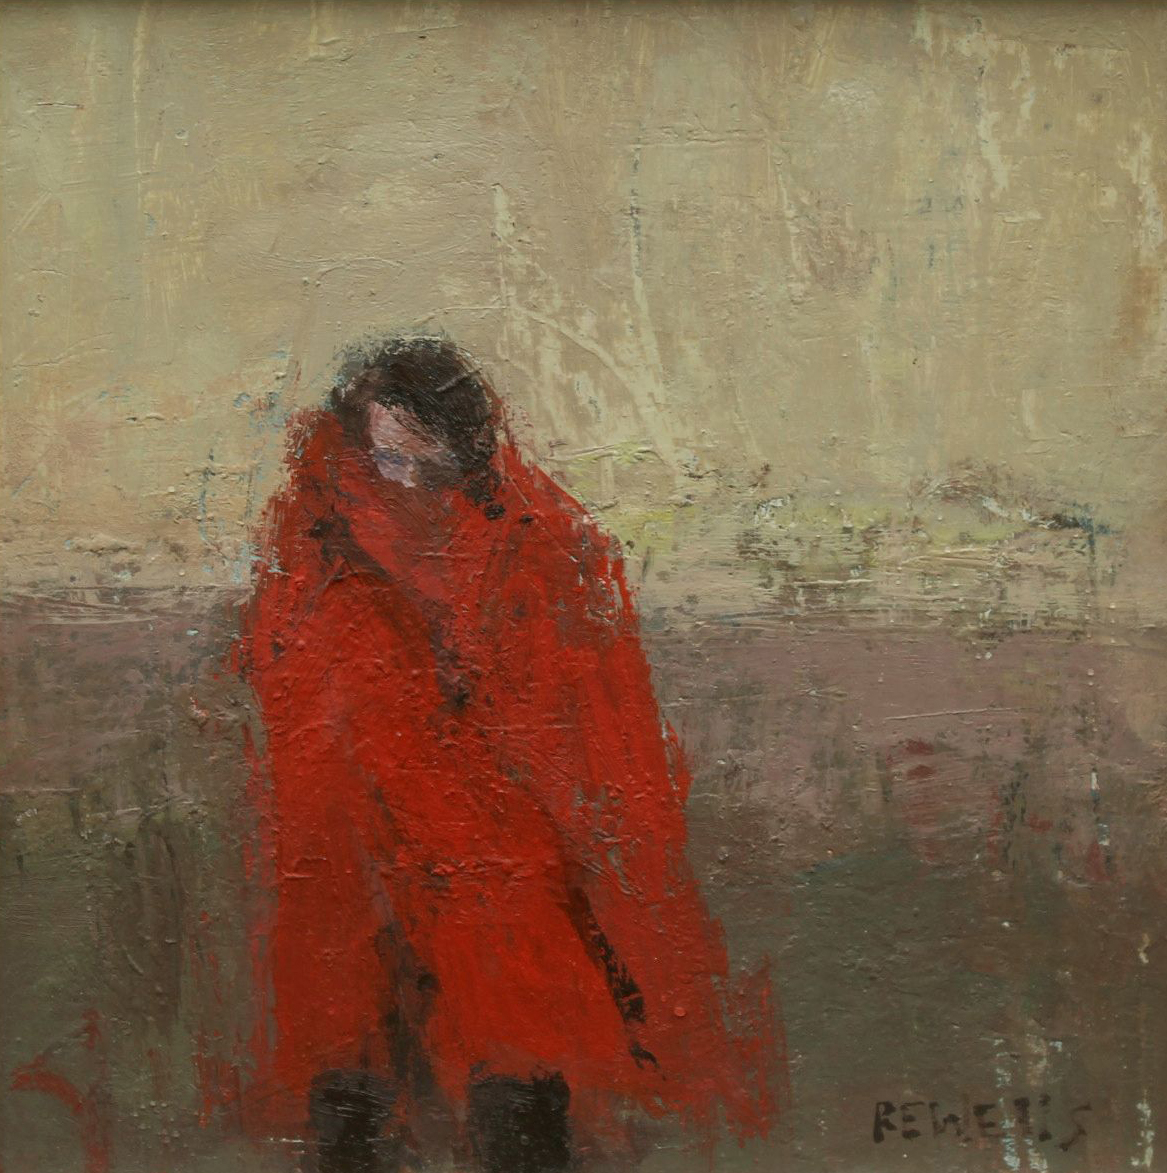 Chiara by ROBERT E WELLS NEAC